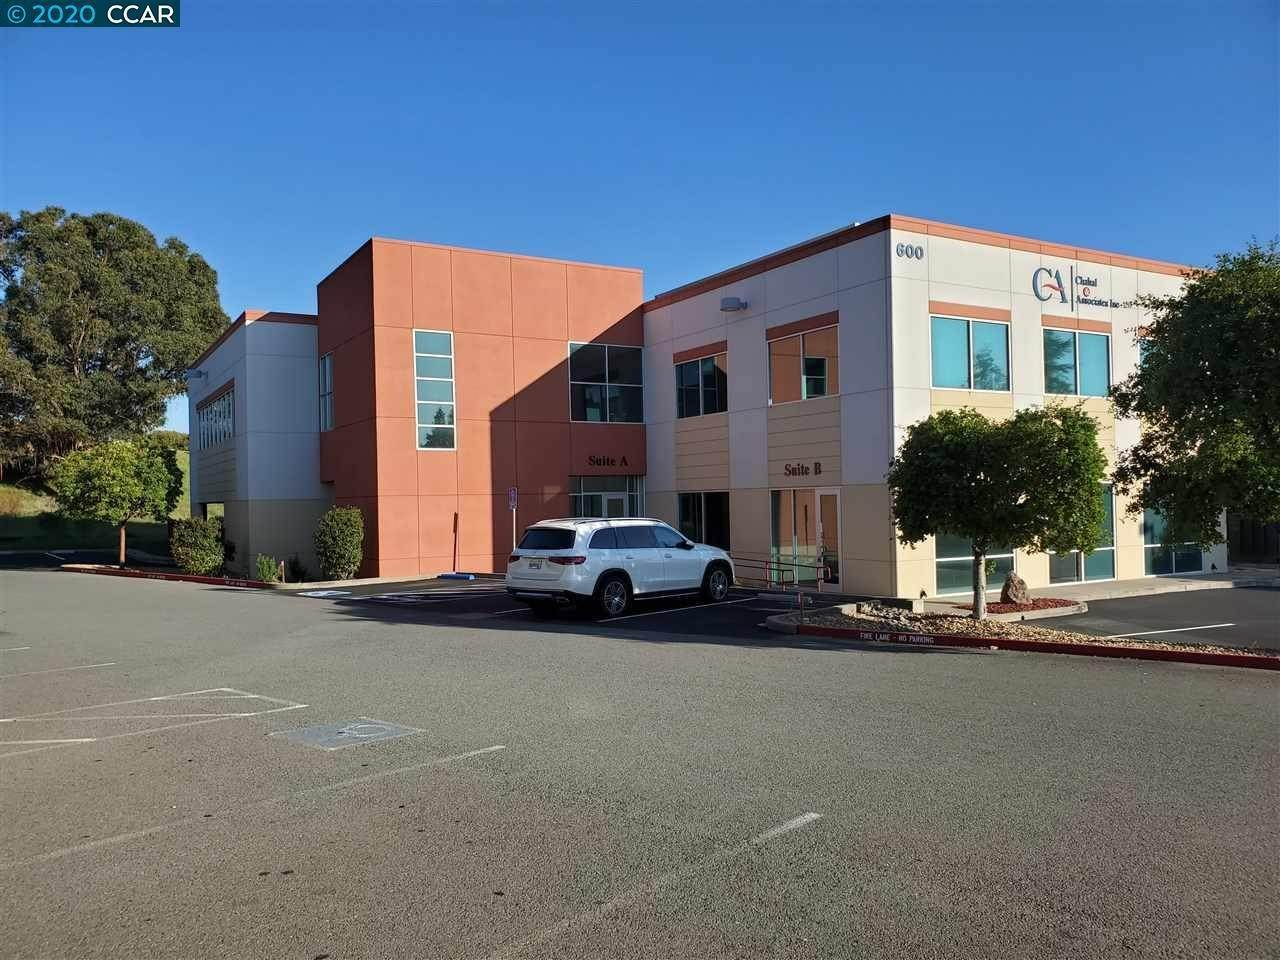 Comm / Ind Lease at 600 Alfred Nobel Drive Hercules, California 94547 United States